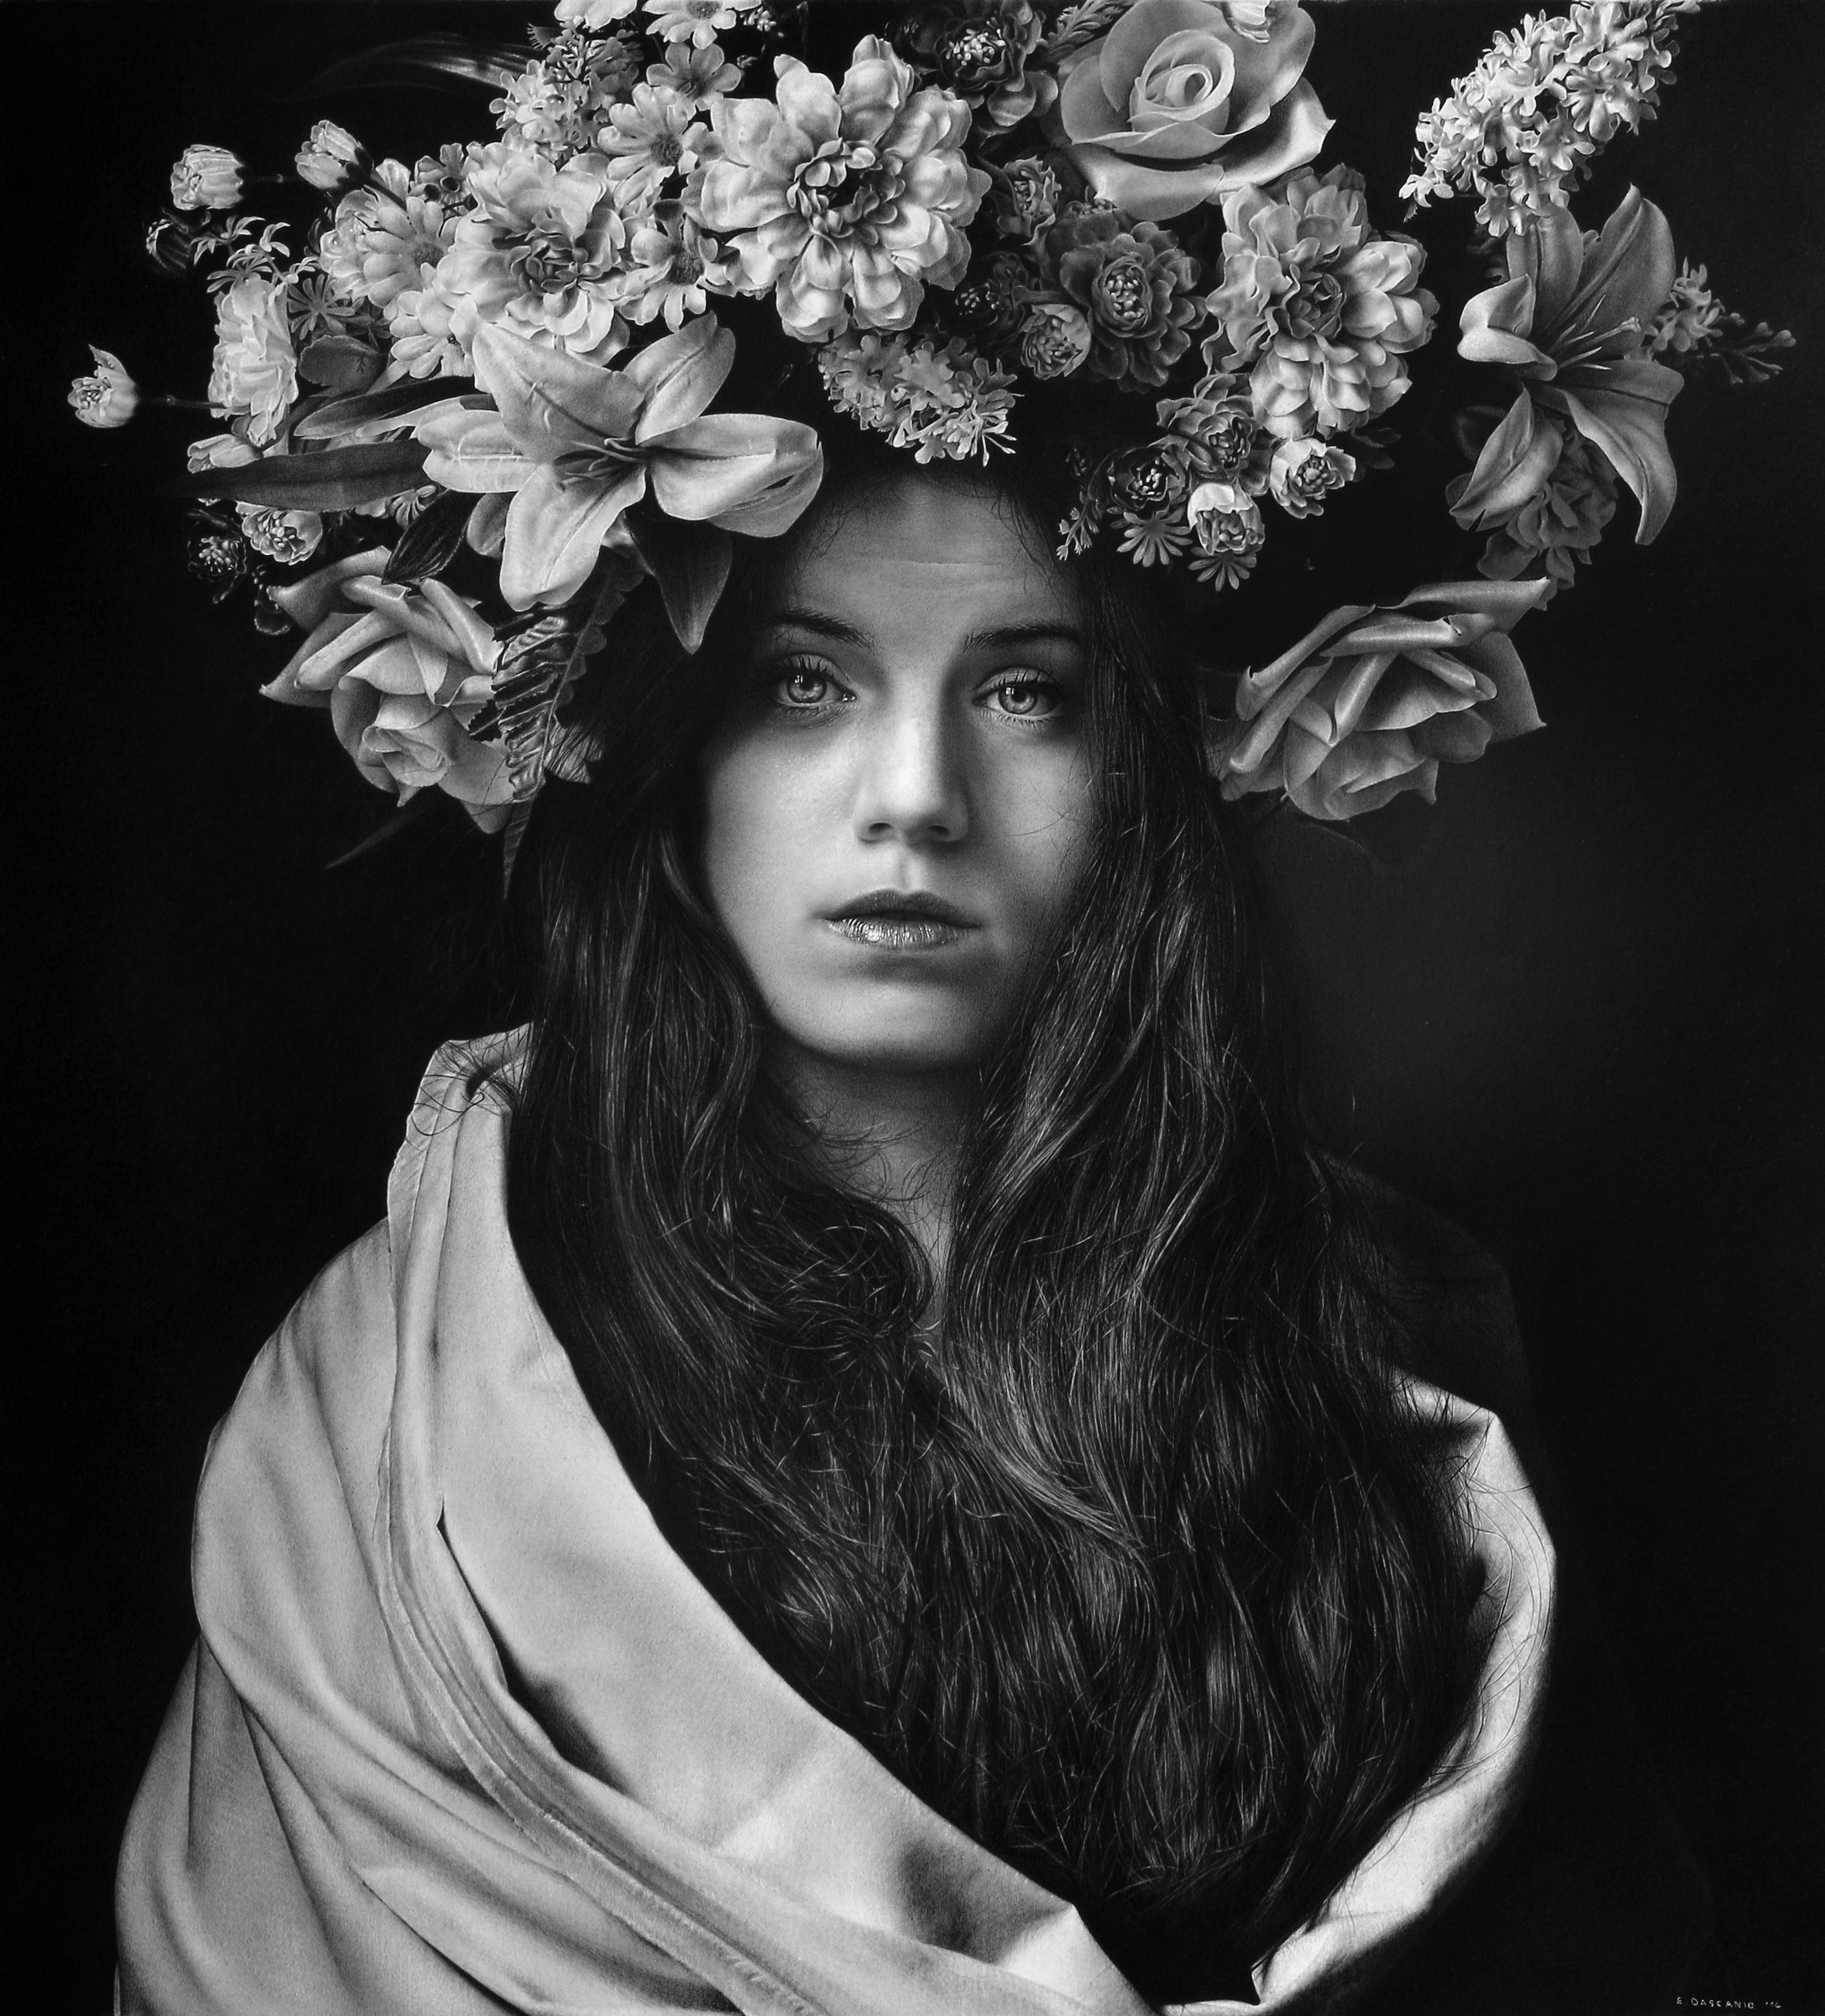 """This artwork is a drawing in fine art, drawing with renassaince technique, size 90 x 63 cm and made in 2013. , an artwork hyperrealistic or fine art made by Emanuele Dascanio. Emanuele Dascanio make aalso workshop and masterclass, he teach drawing, how to draw, he expose in all over the world. Emanuele Dascanio is a master of contemporary art and he exposed in all museums and private collections of art. The title of this artwork is Work in progress of drawing Work in progress """"Libertas ?"""" - Charcoal and graphite on paper - 78 x 70 cm 2014"""